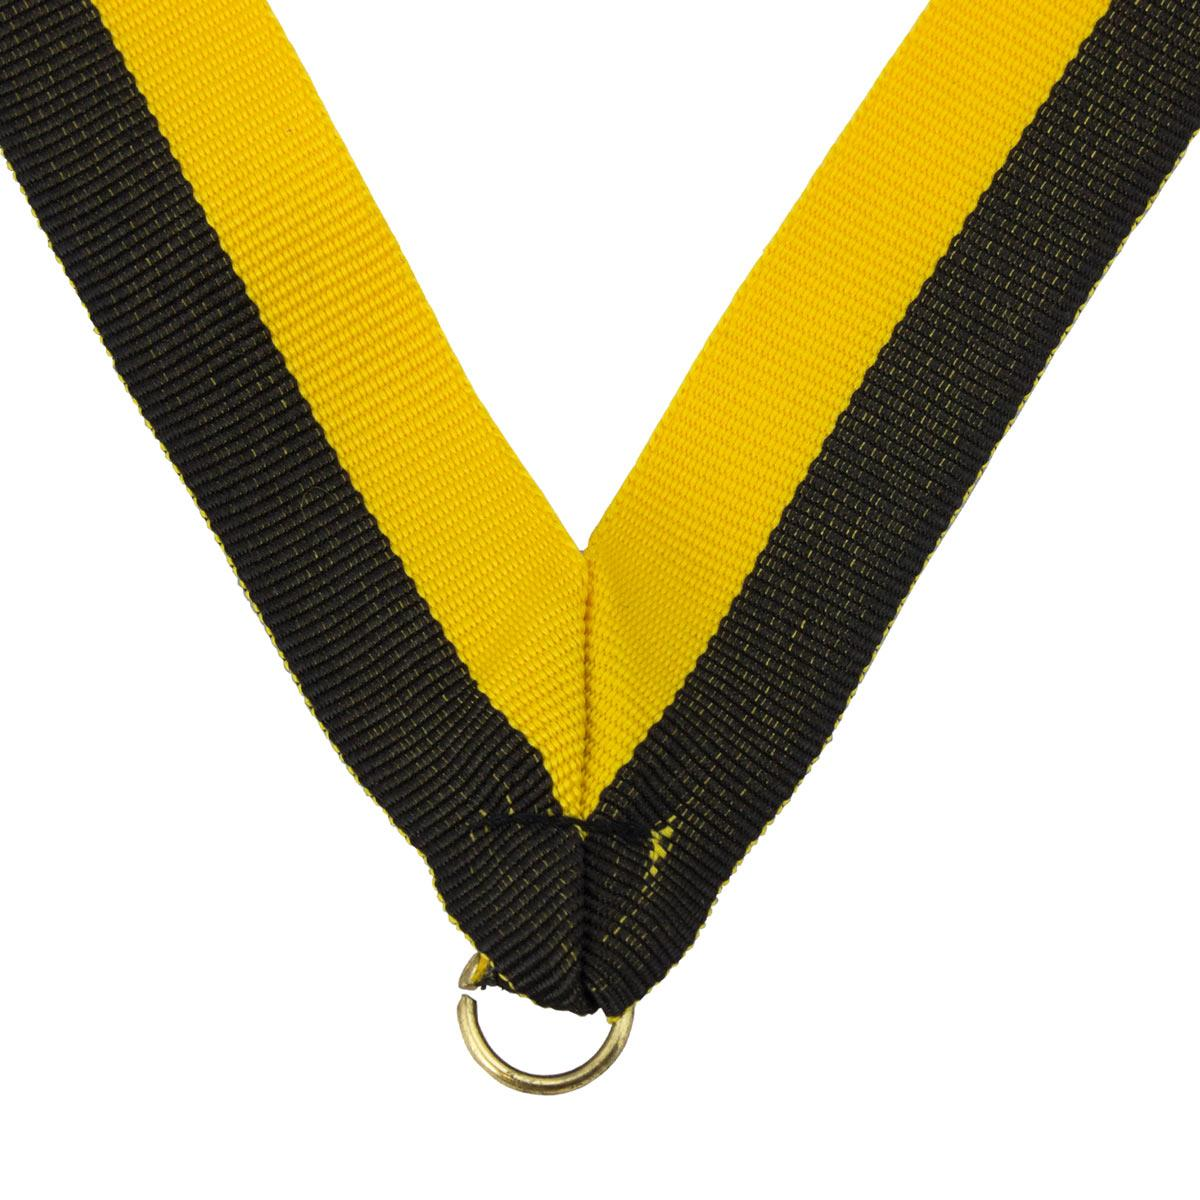 durable neck ribbon in black and gold with brass jump ring